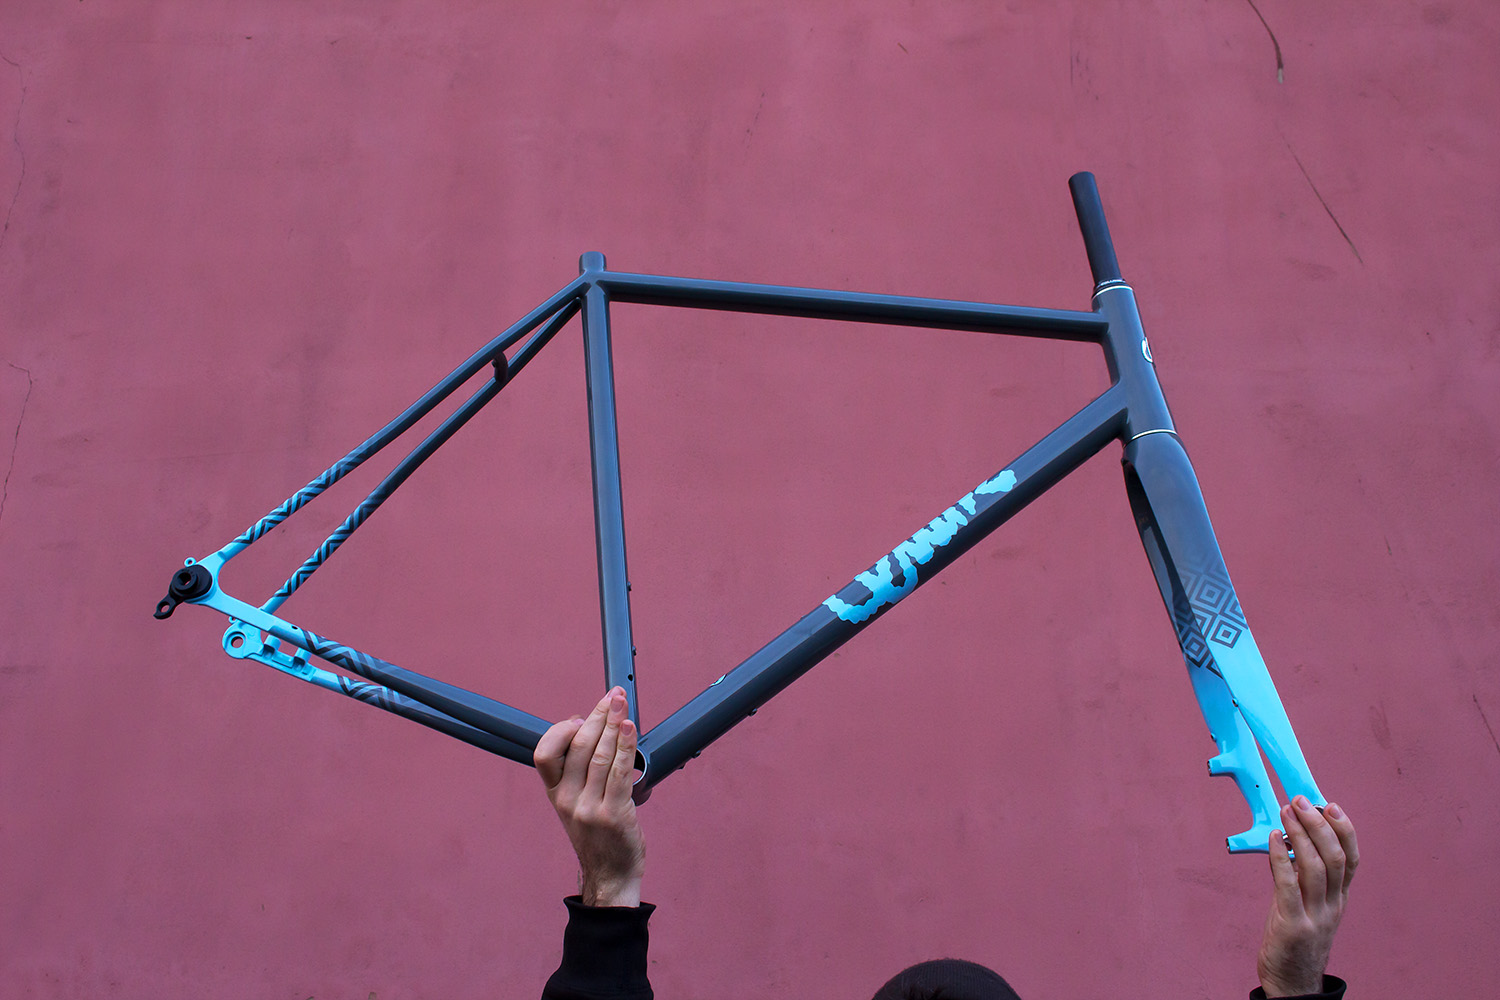 quirk_cycles_jack_thompson_all_road_web_0010.jpg